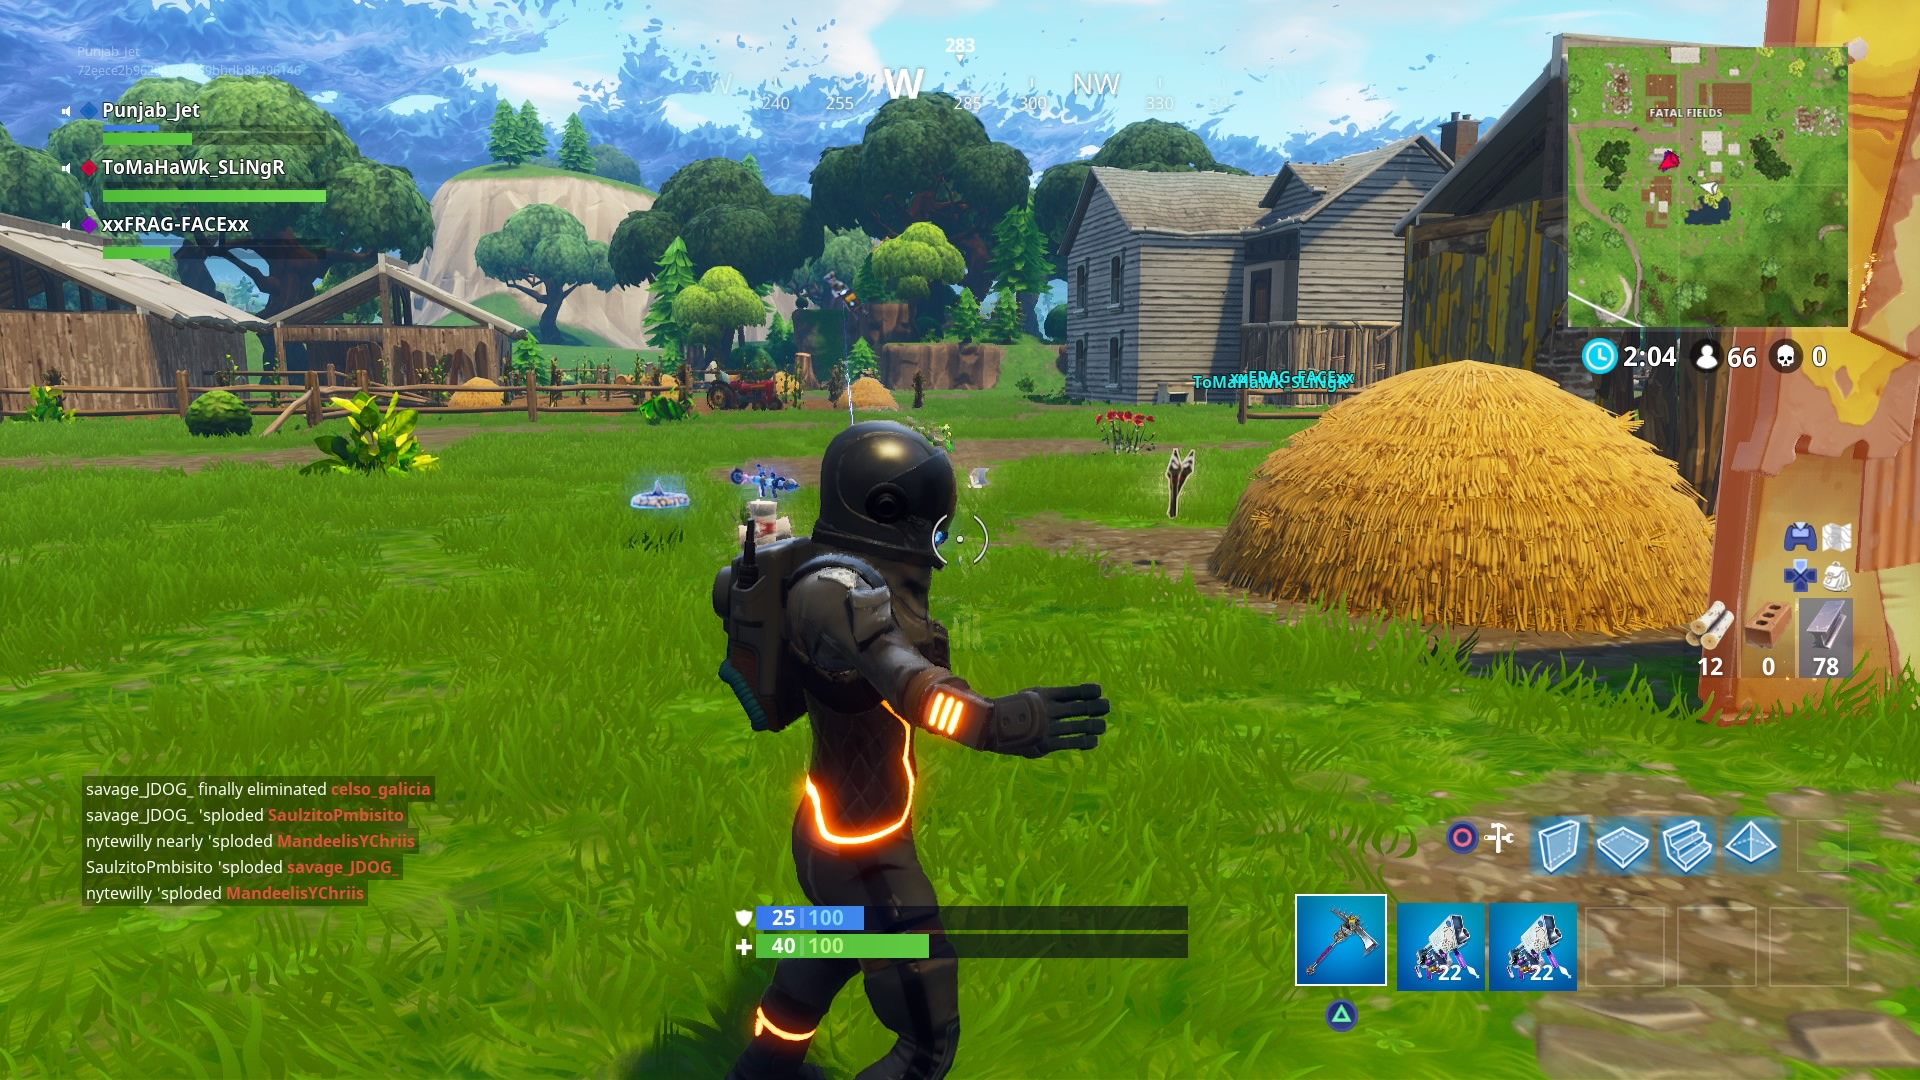 fortnite fatal fields desktop wallpaper 767